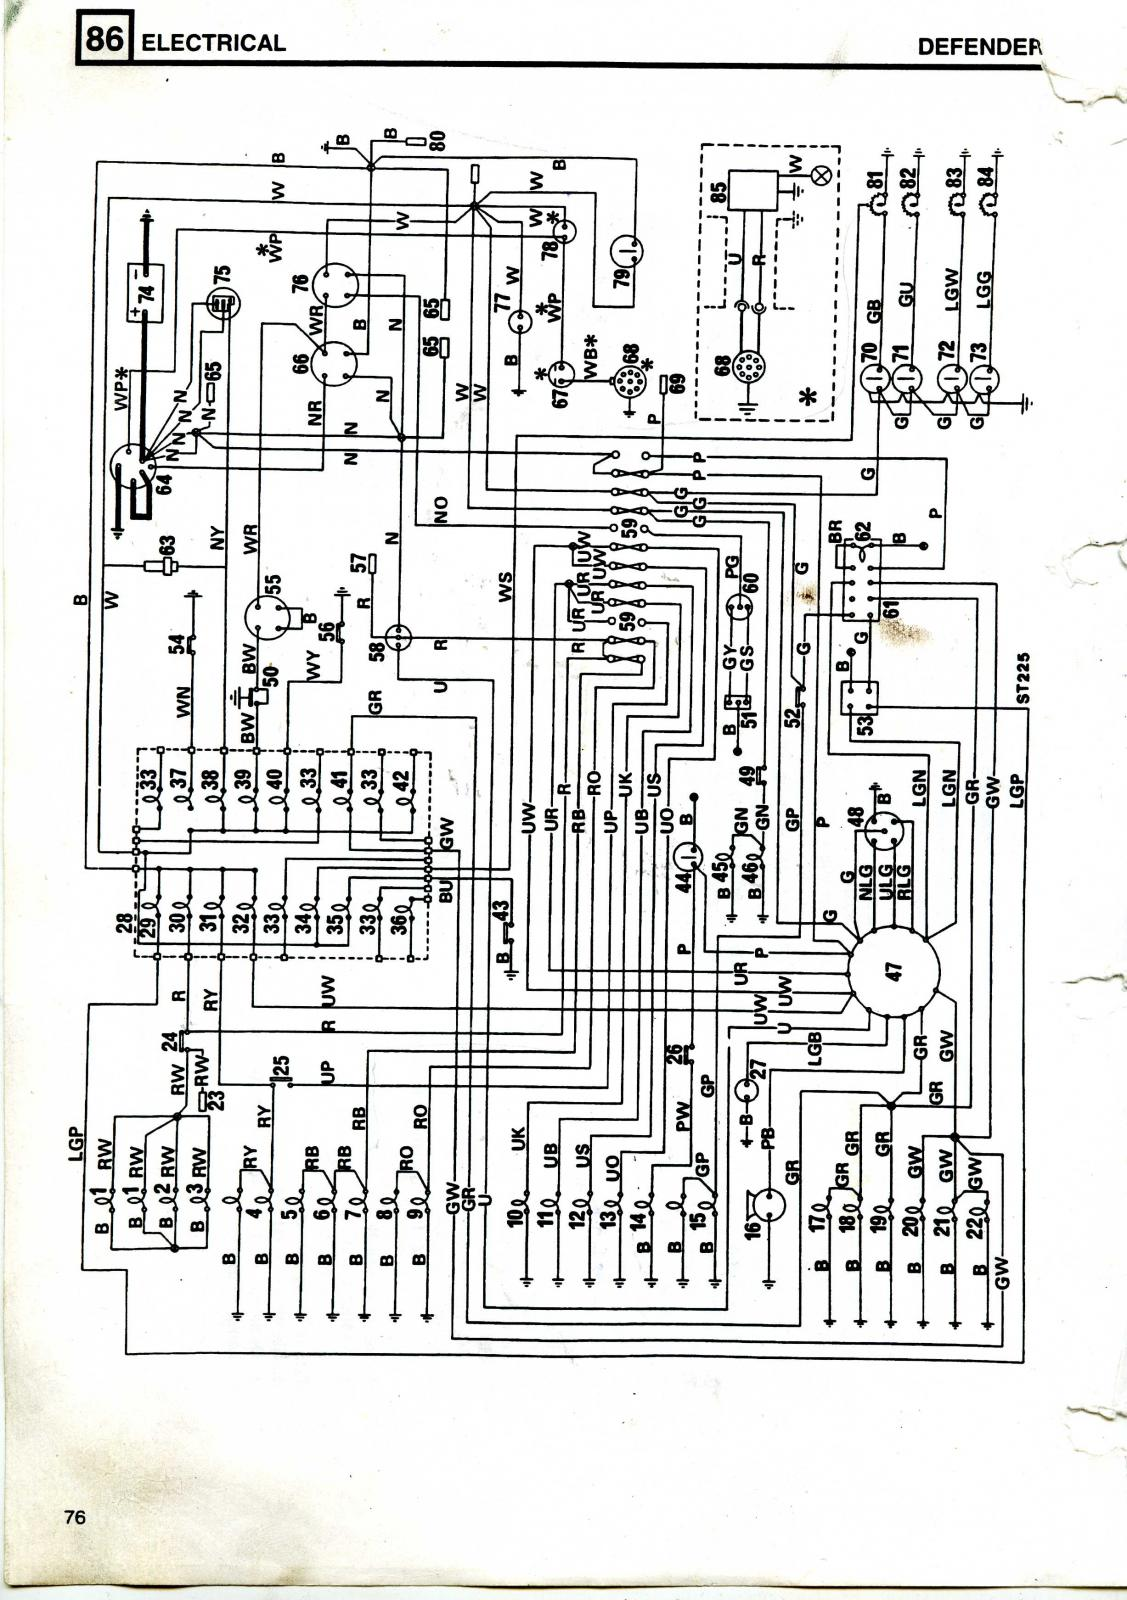 Land Rover 90 V8 3 5 Carb Wiring Diagram Needed